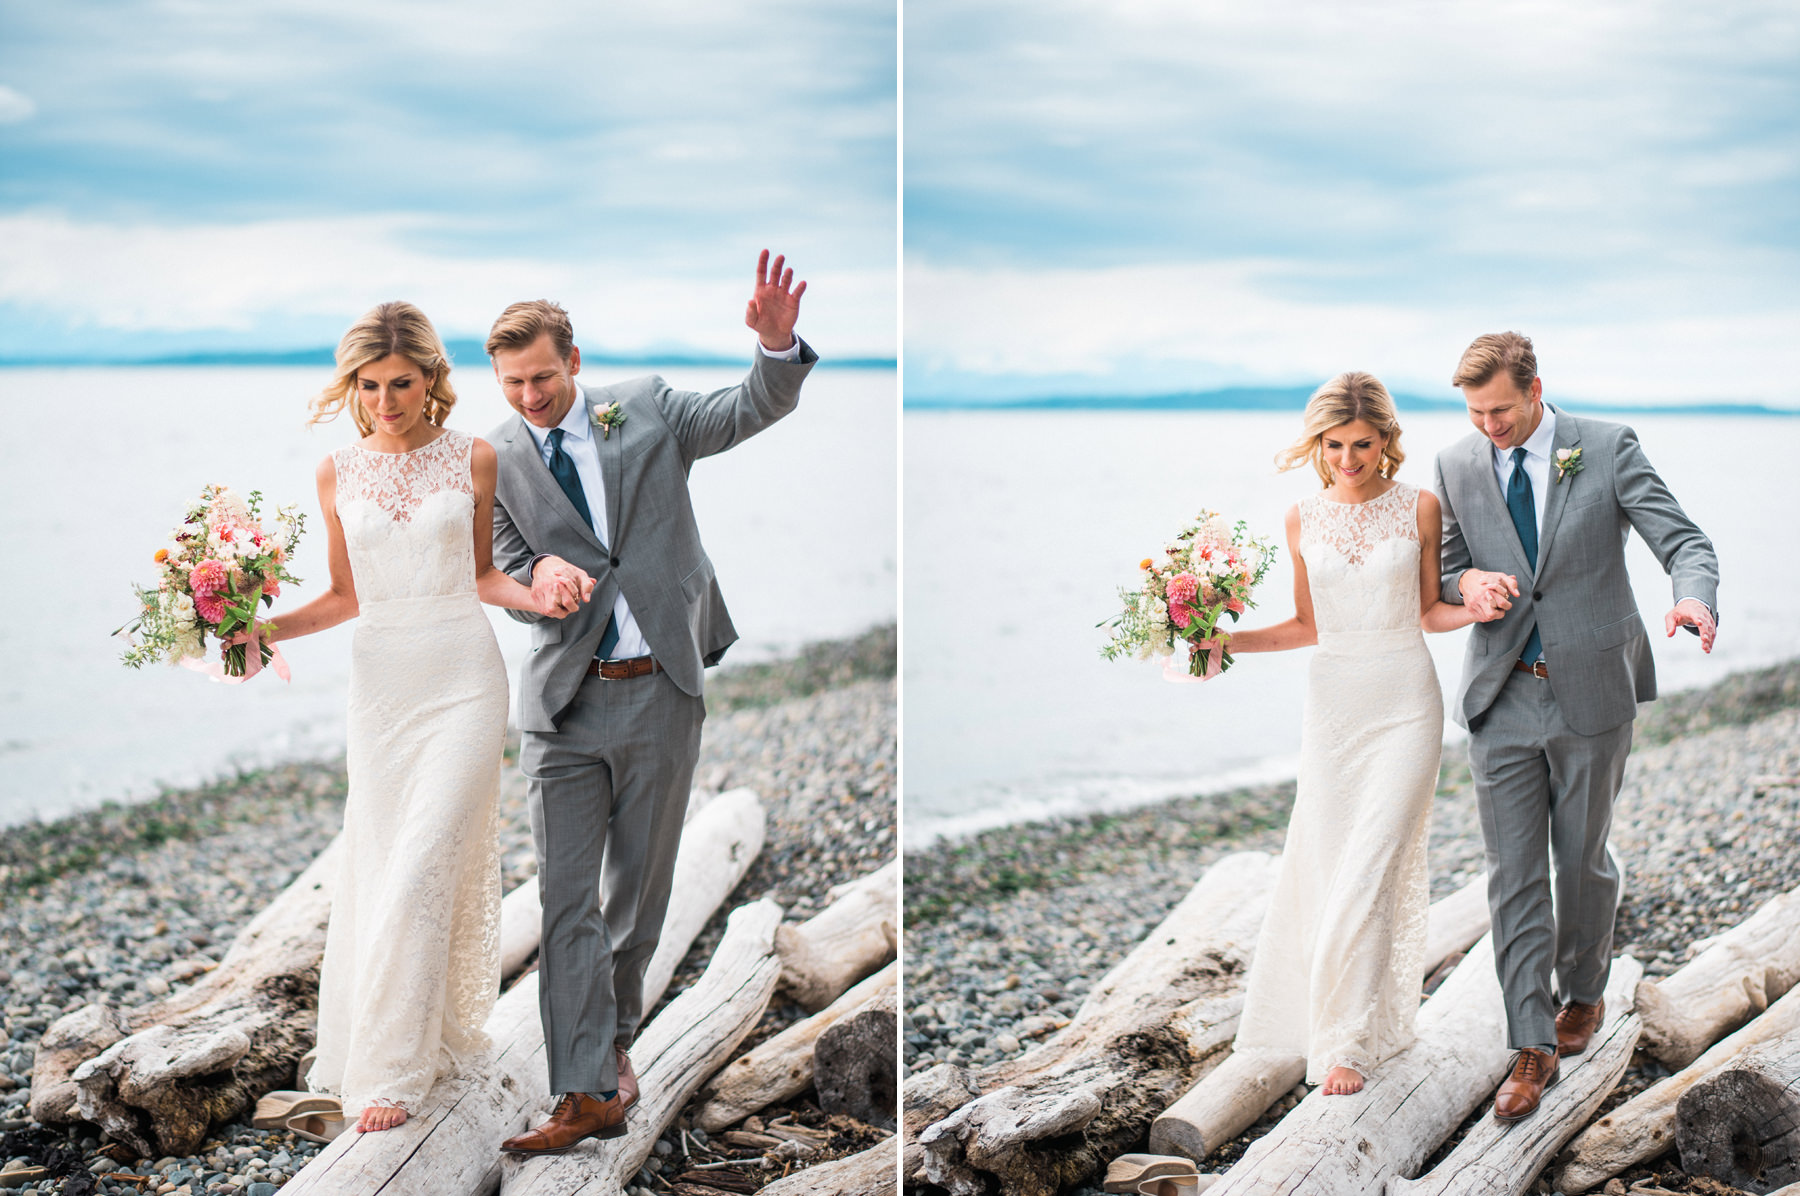 180-wedding-couple-walking-on-driftwood-holding-flowers-by-floret-floral.jpg